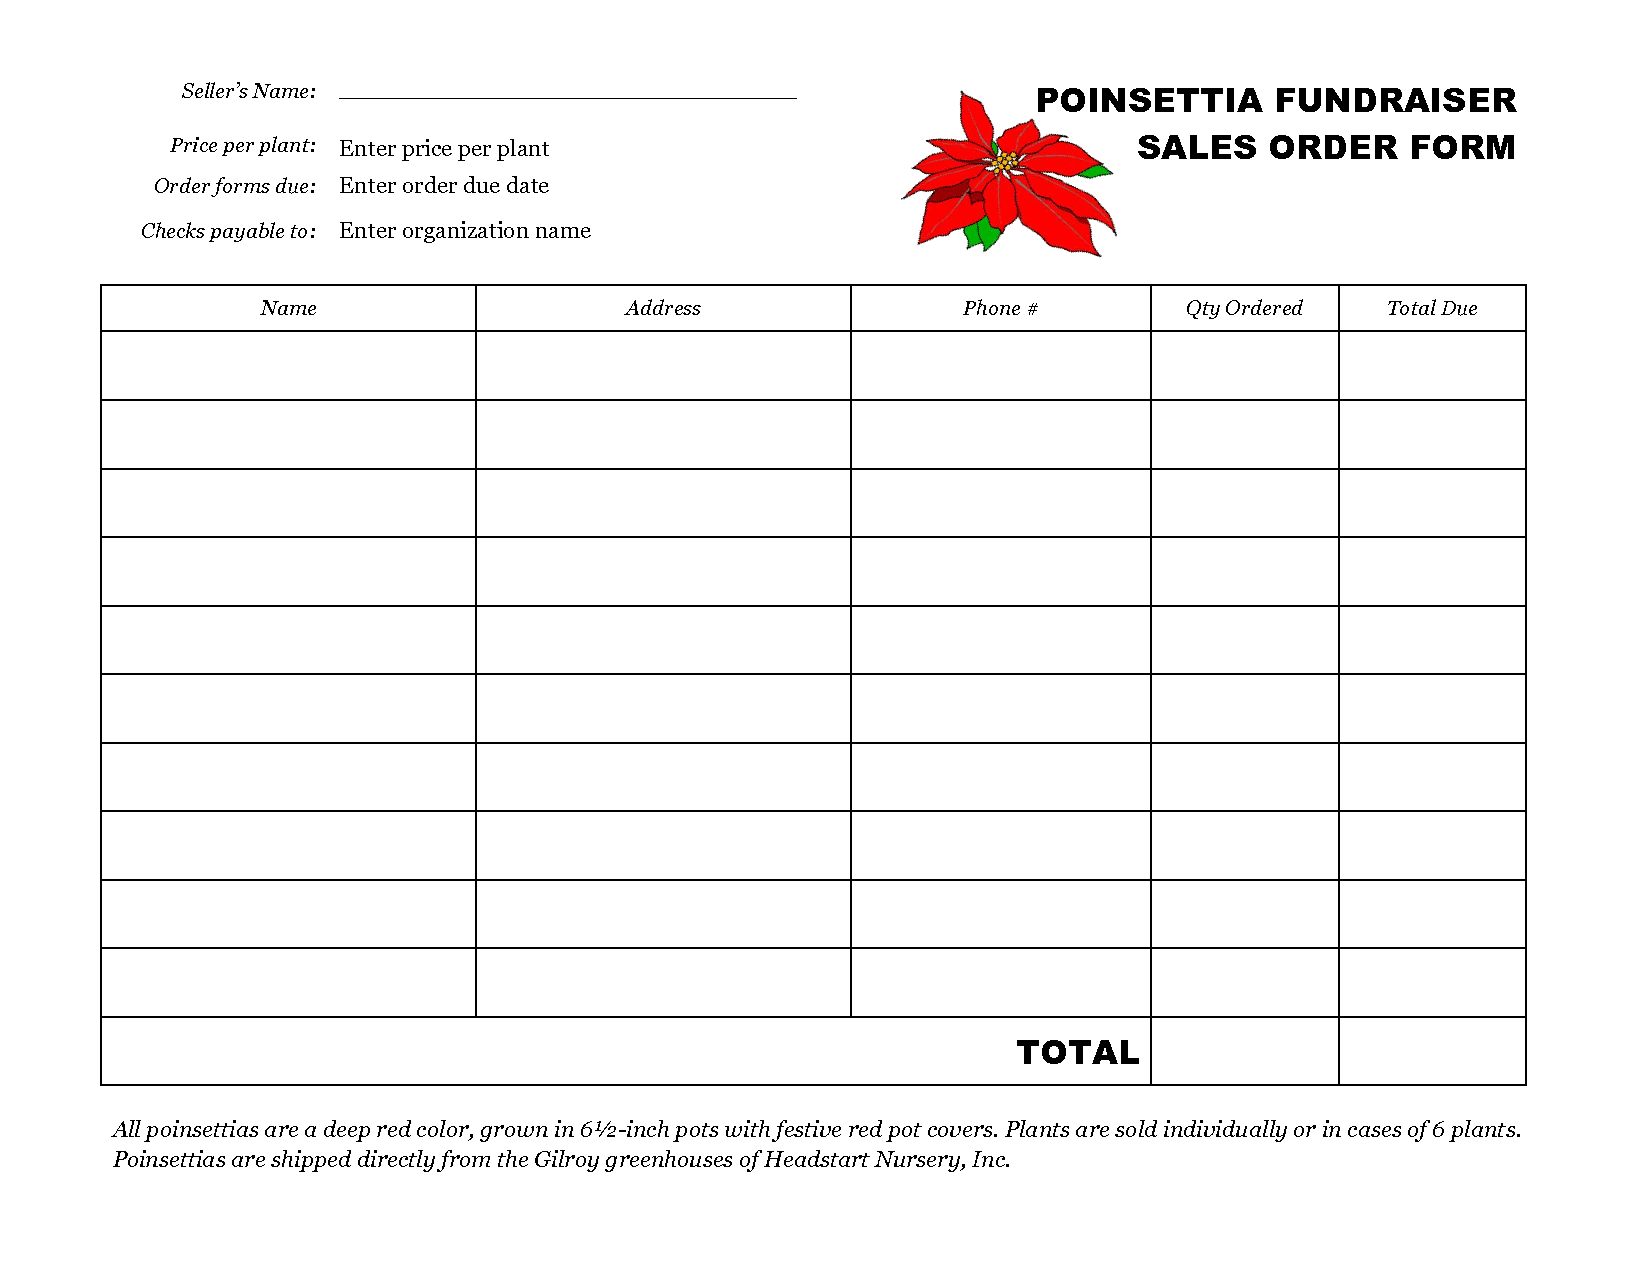 Fundraising Form Template free printable affidavit form thank you – Order Forms Templates Free Word